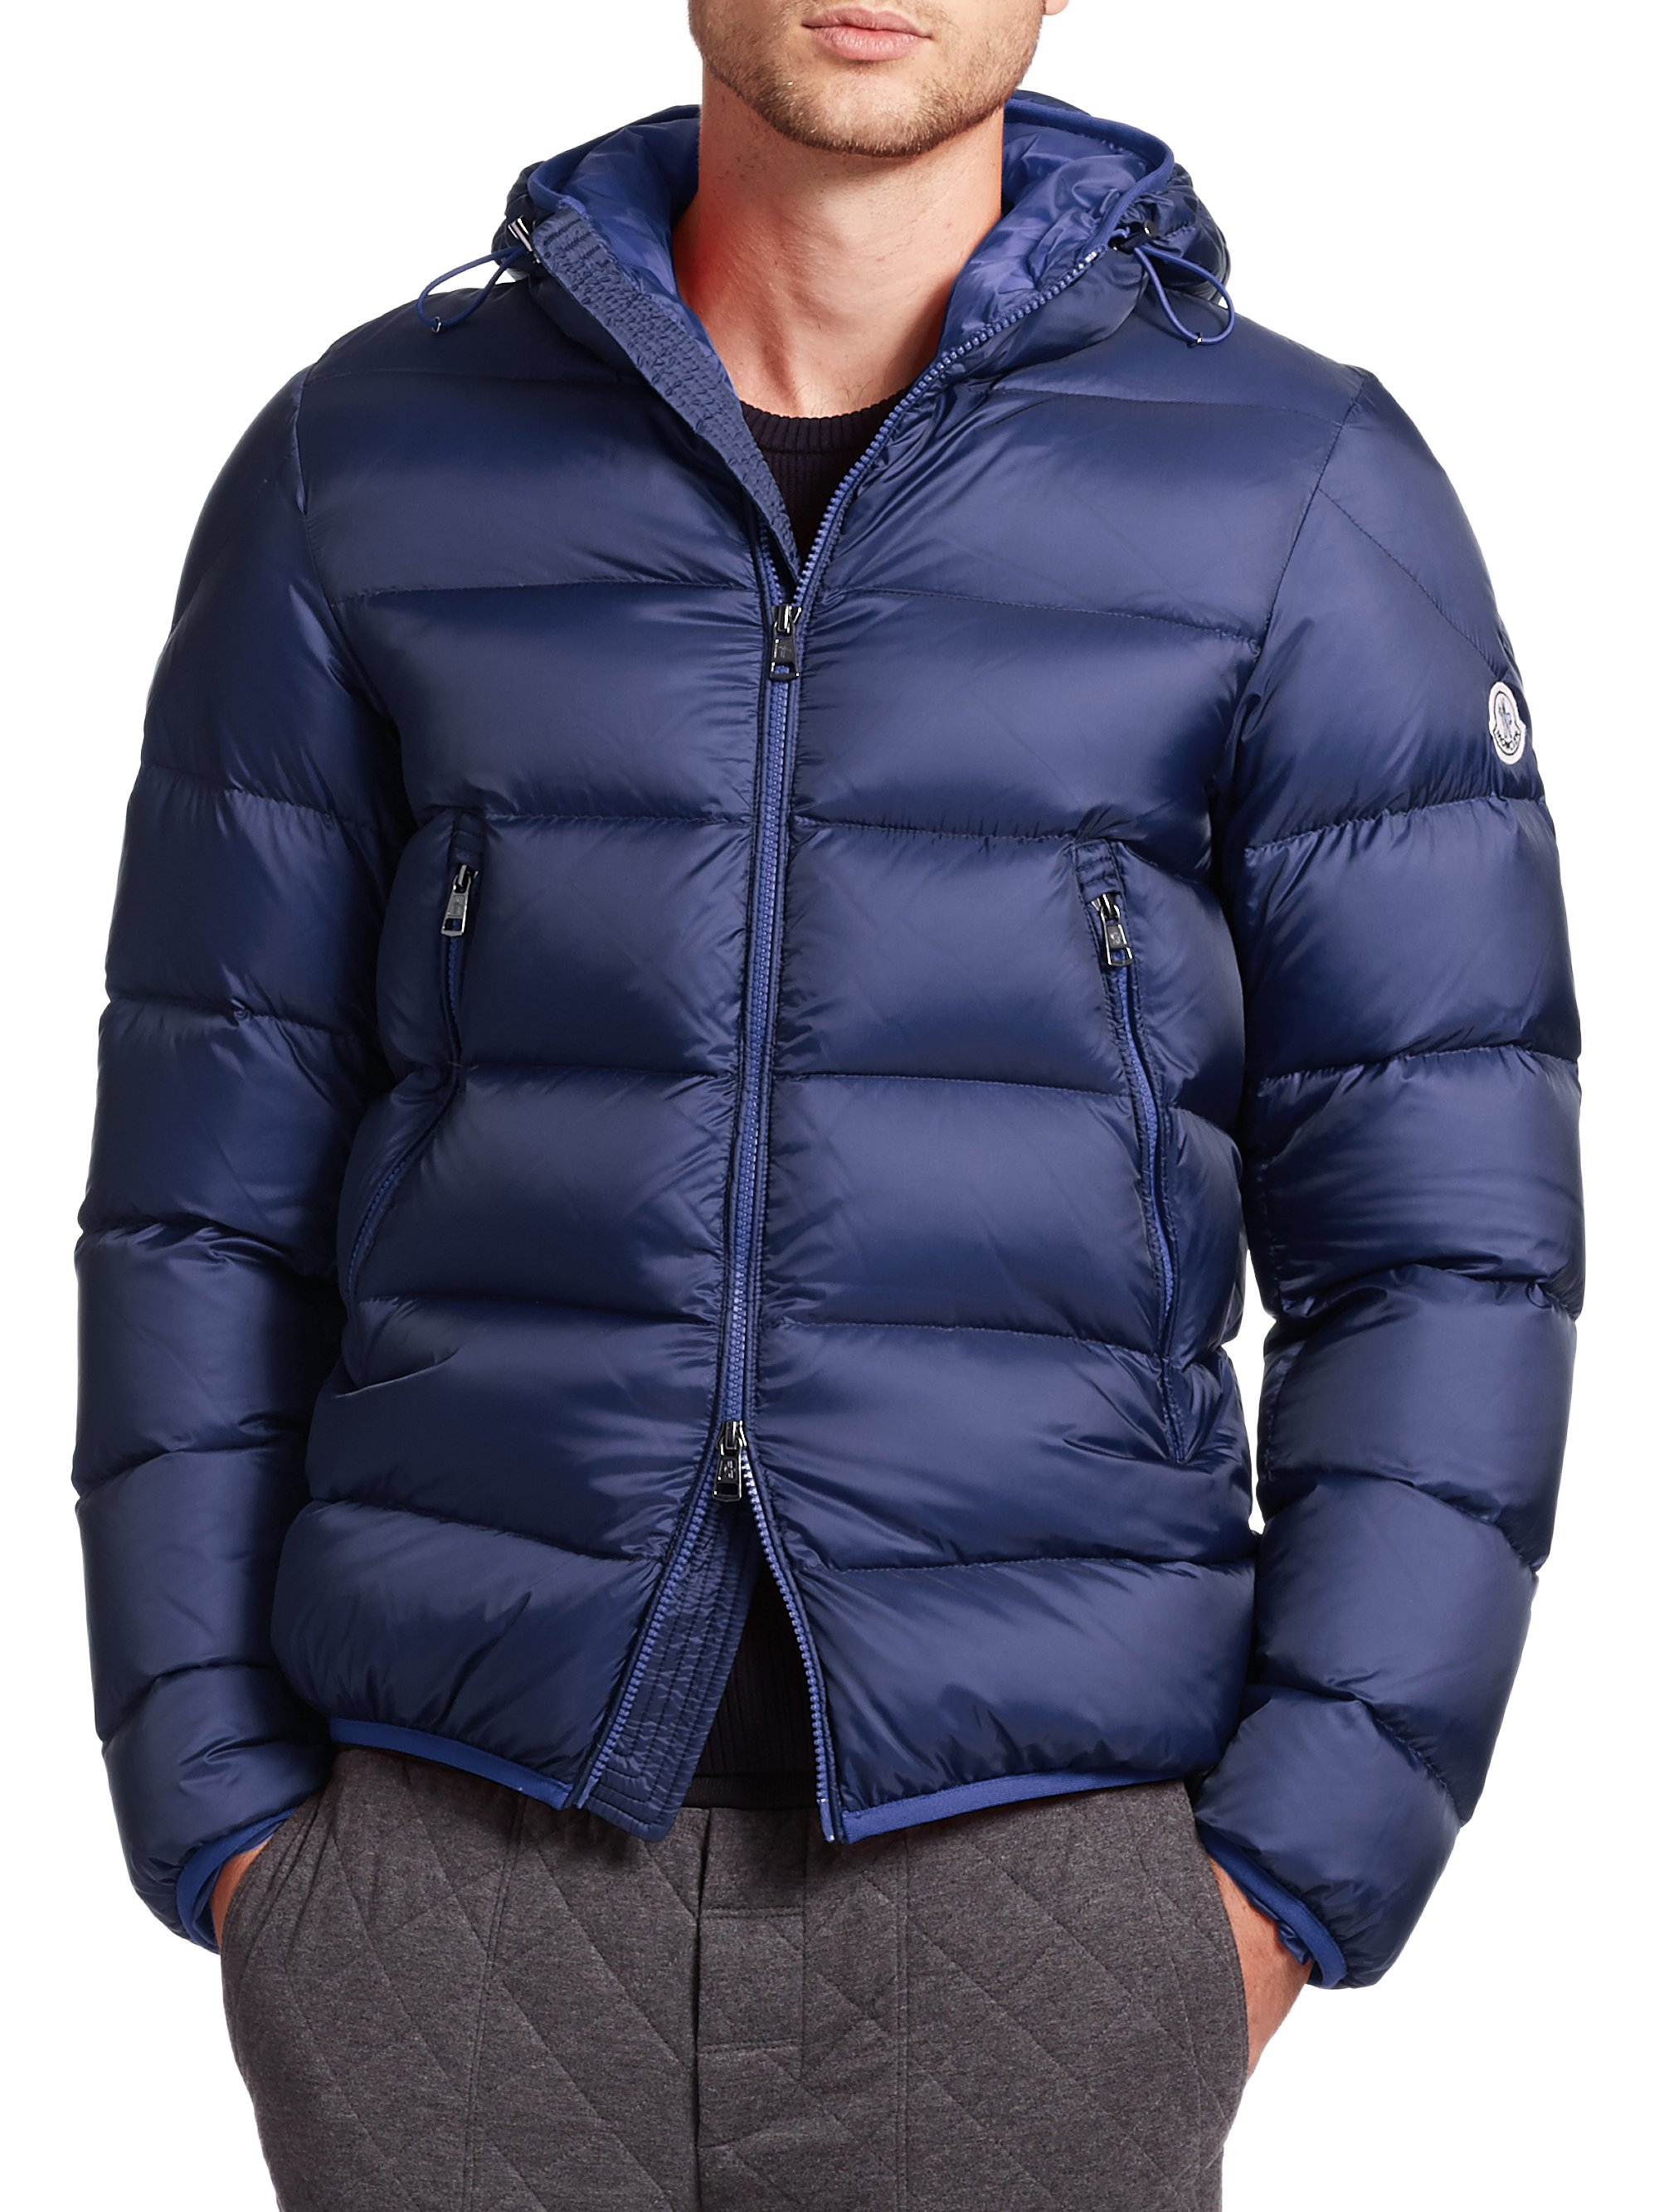 Buy Cheap Pick A Best padded vest - Blue Moncler Buy Cheap Affordable Clearance Extremely nMRIfvhb